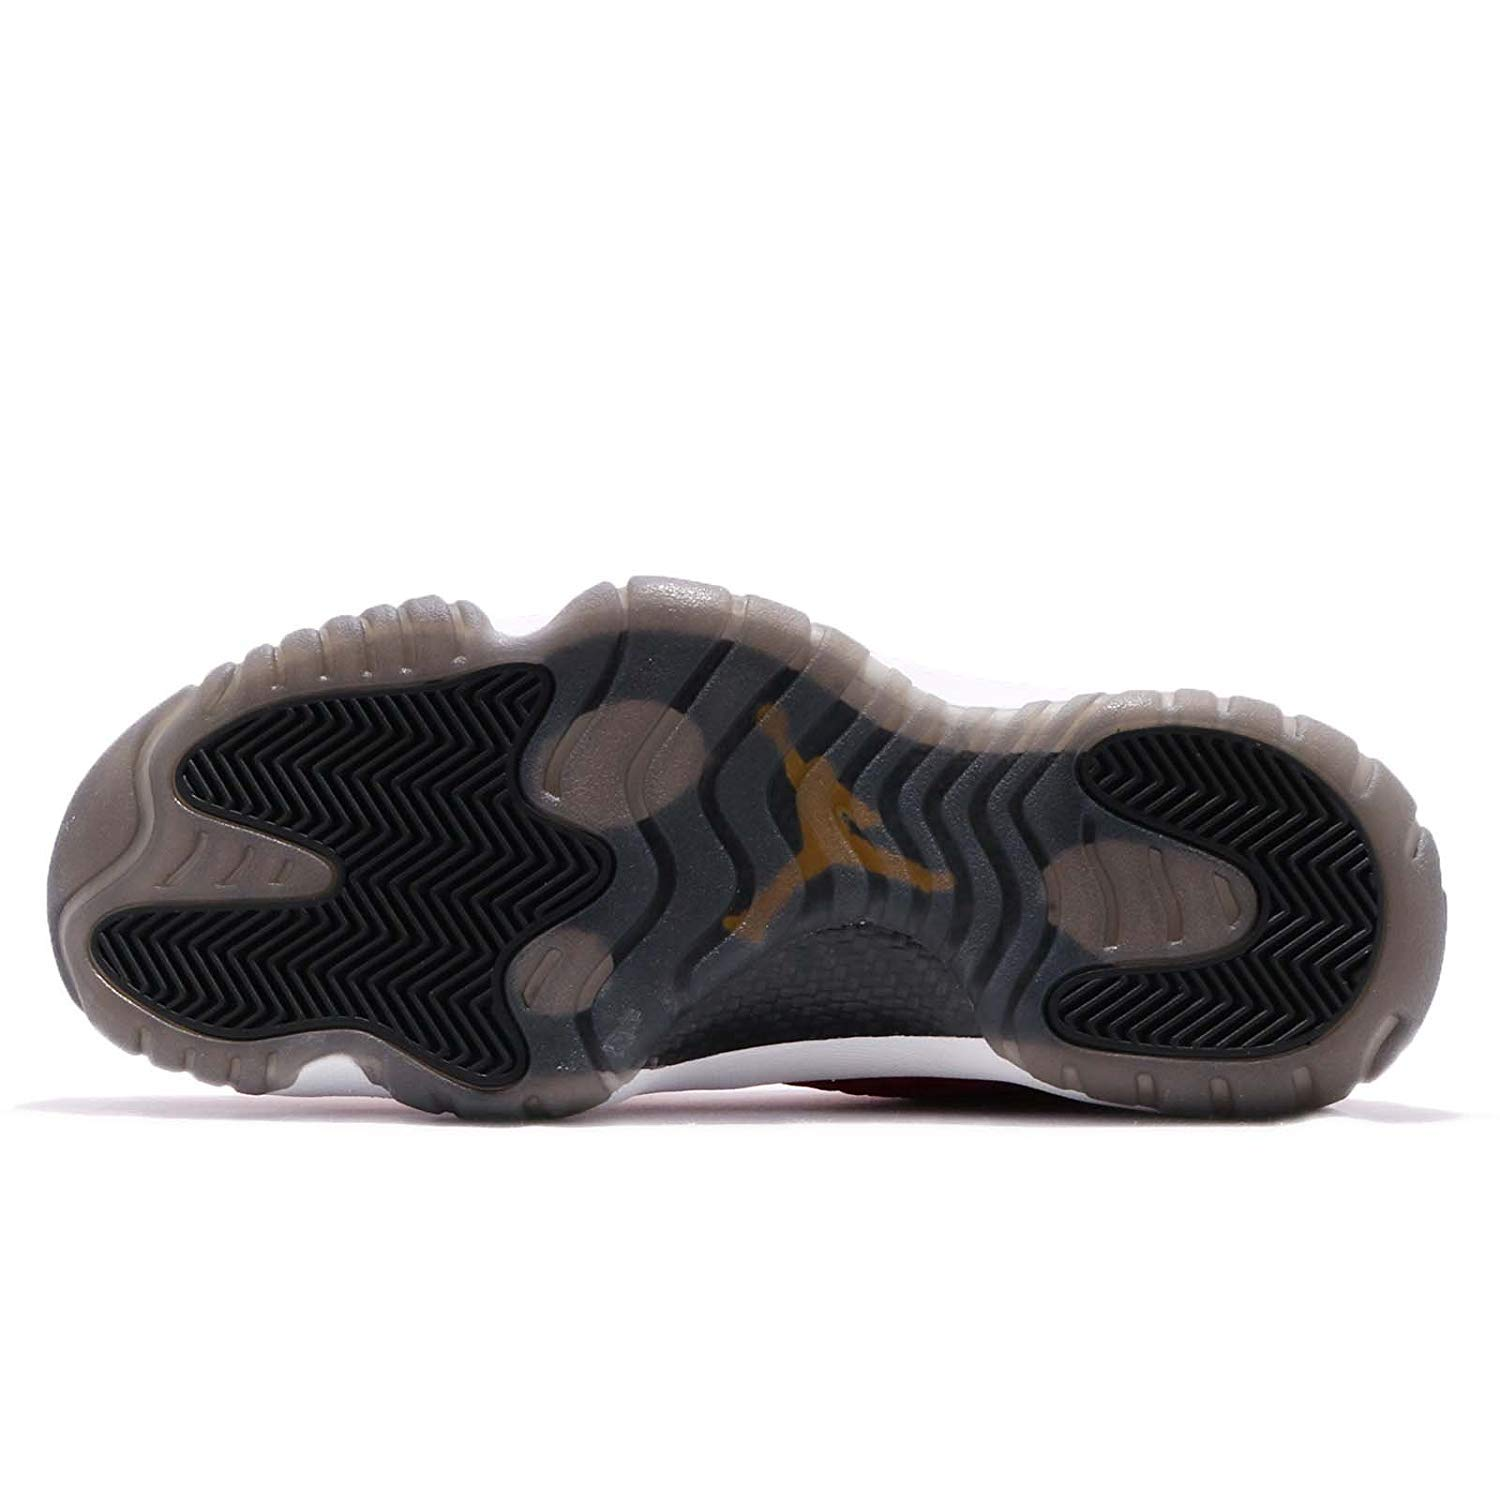 6306af54bc4 Amazon.com | Nike Air Jordan Future Low Mens Trainers 718948 Sneakers Shoes  | Basketball